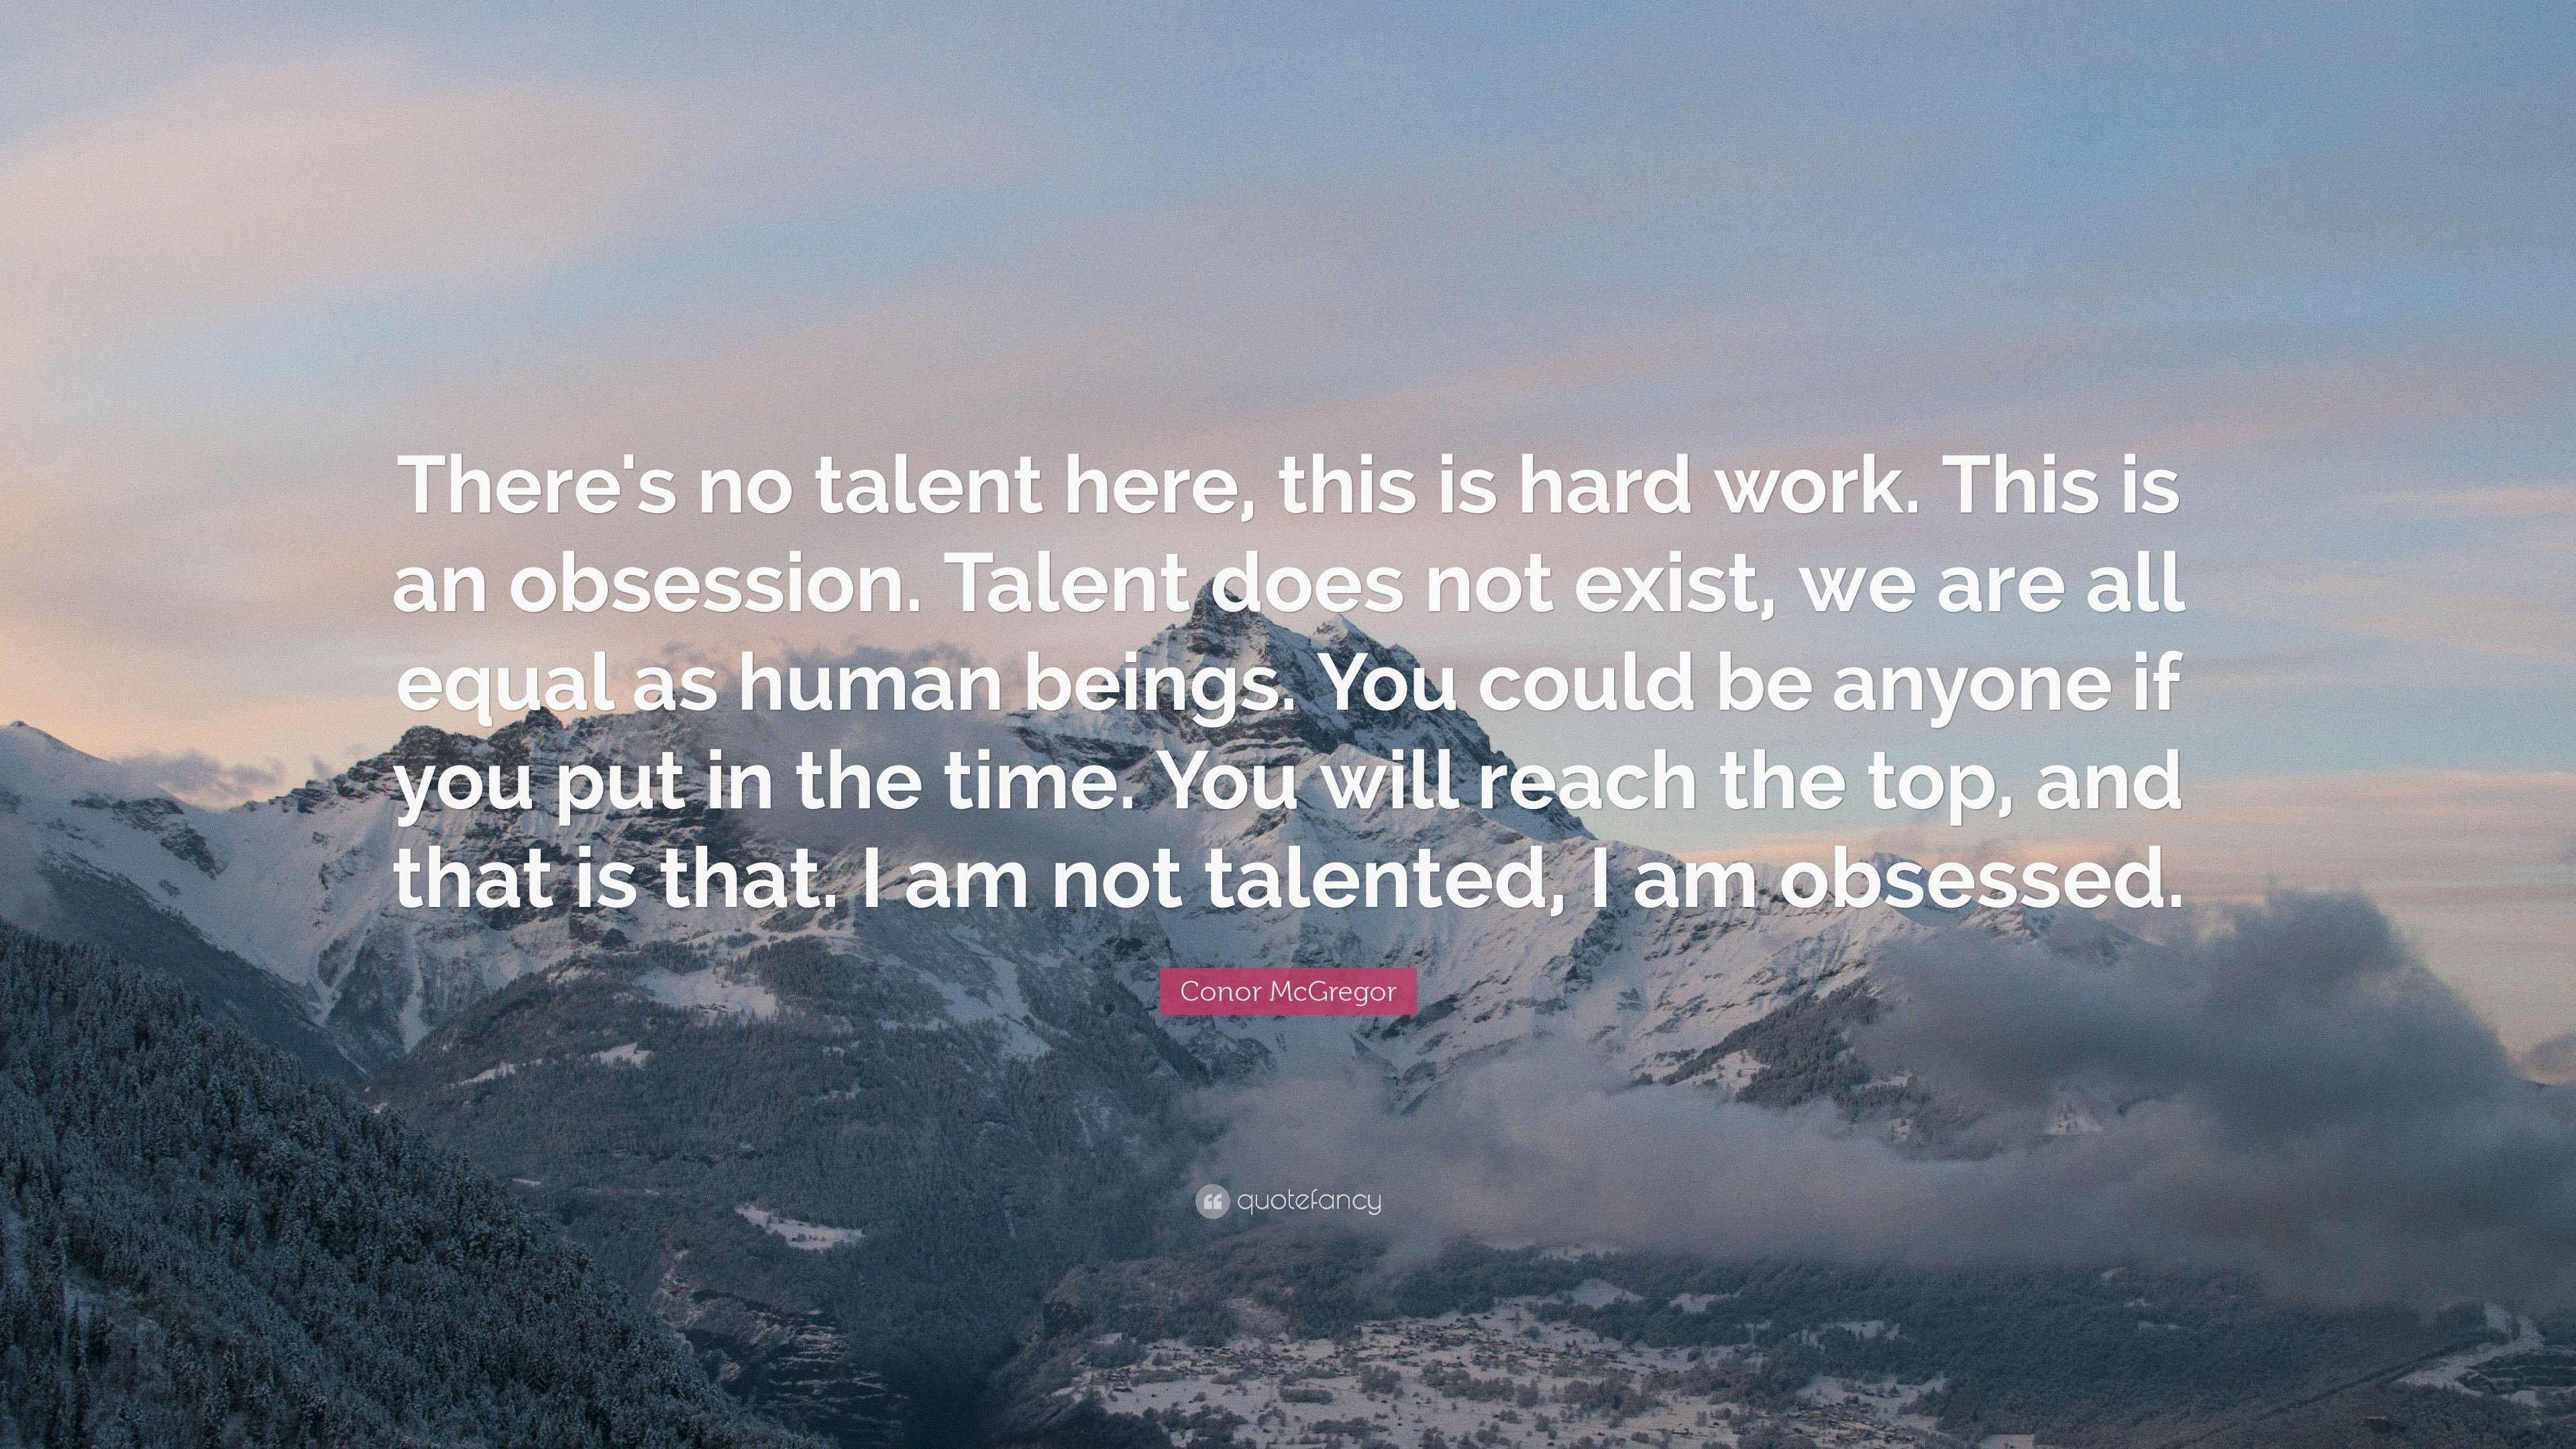 I am not talented, I am obsessed – Conor McGregor [3840 x 2160]